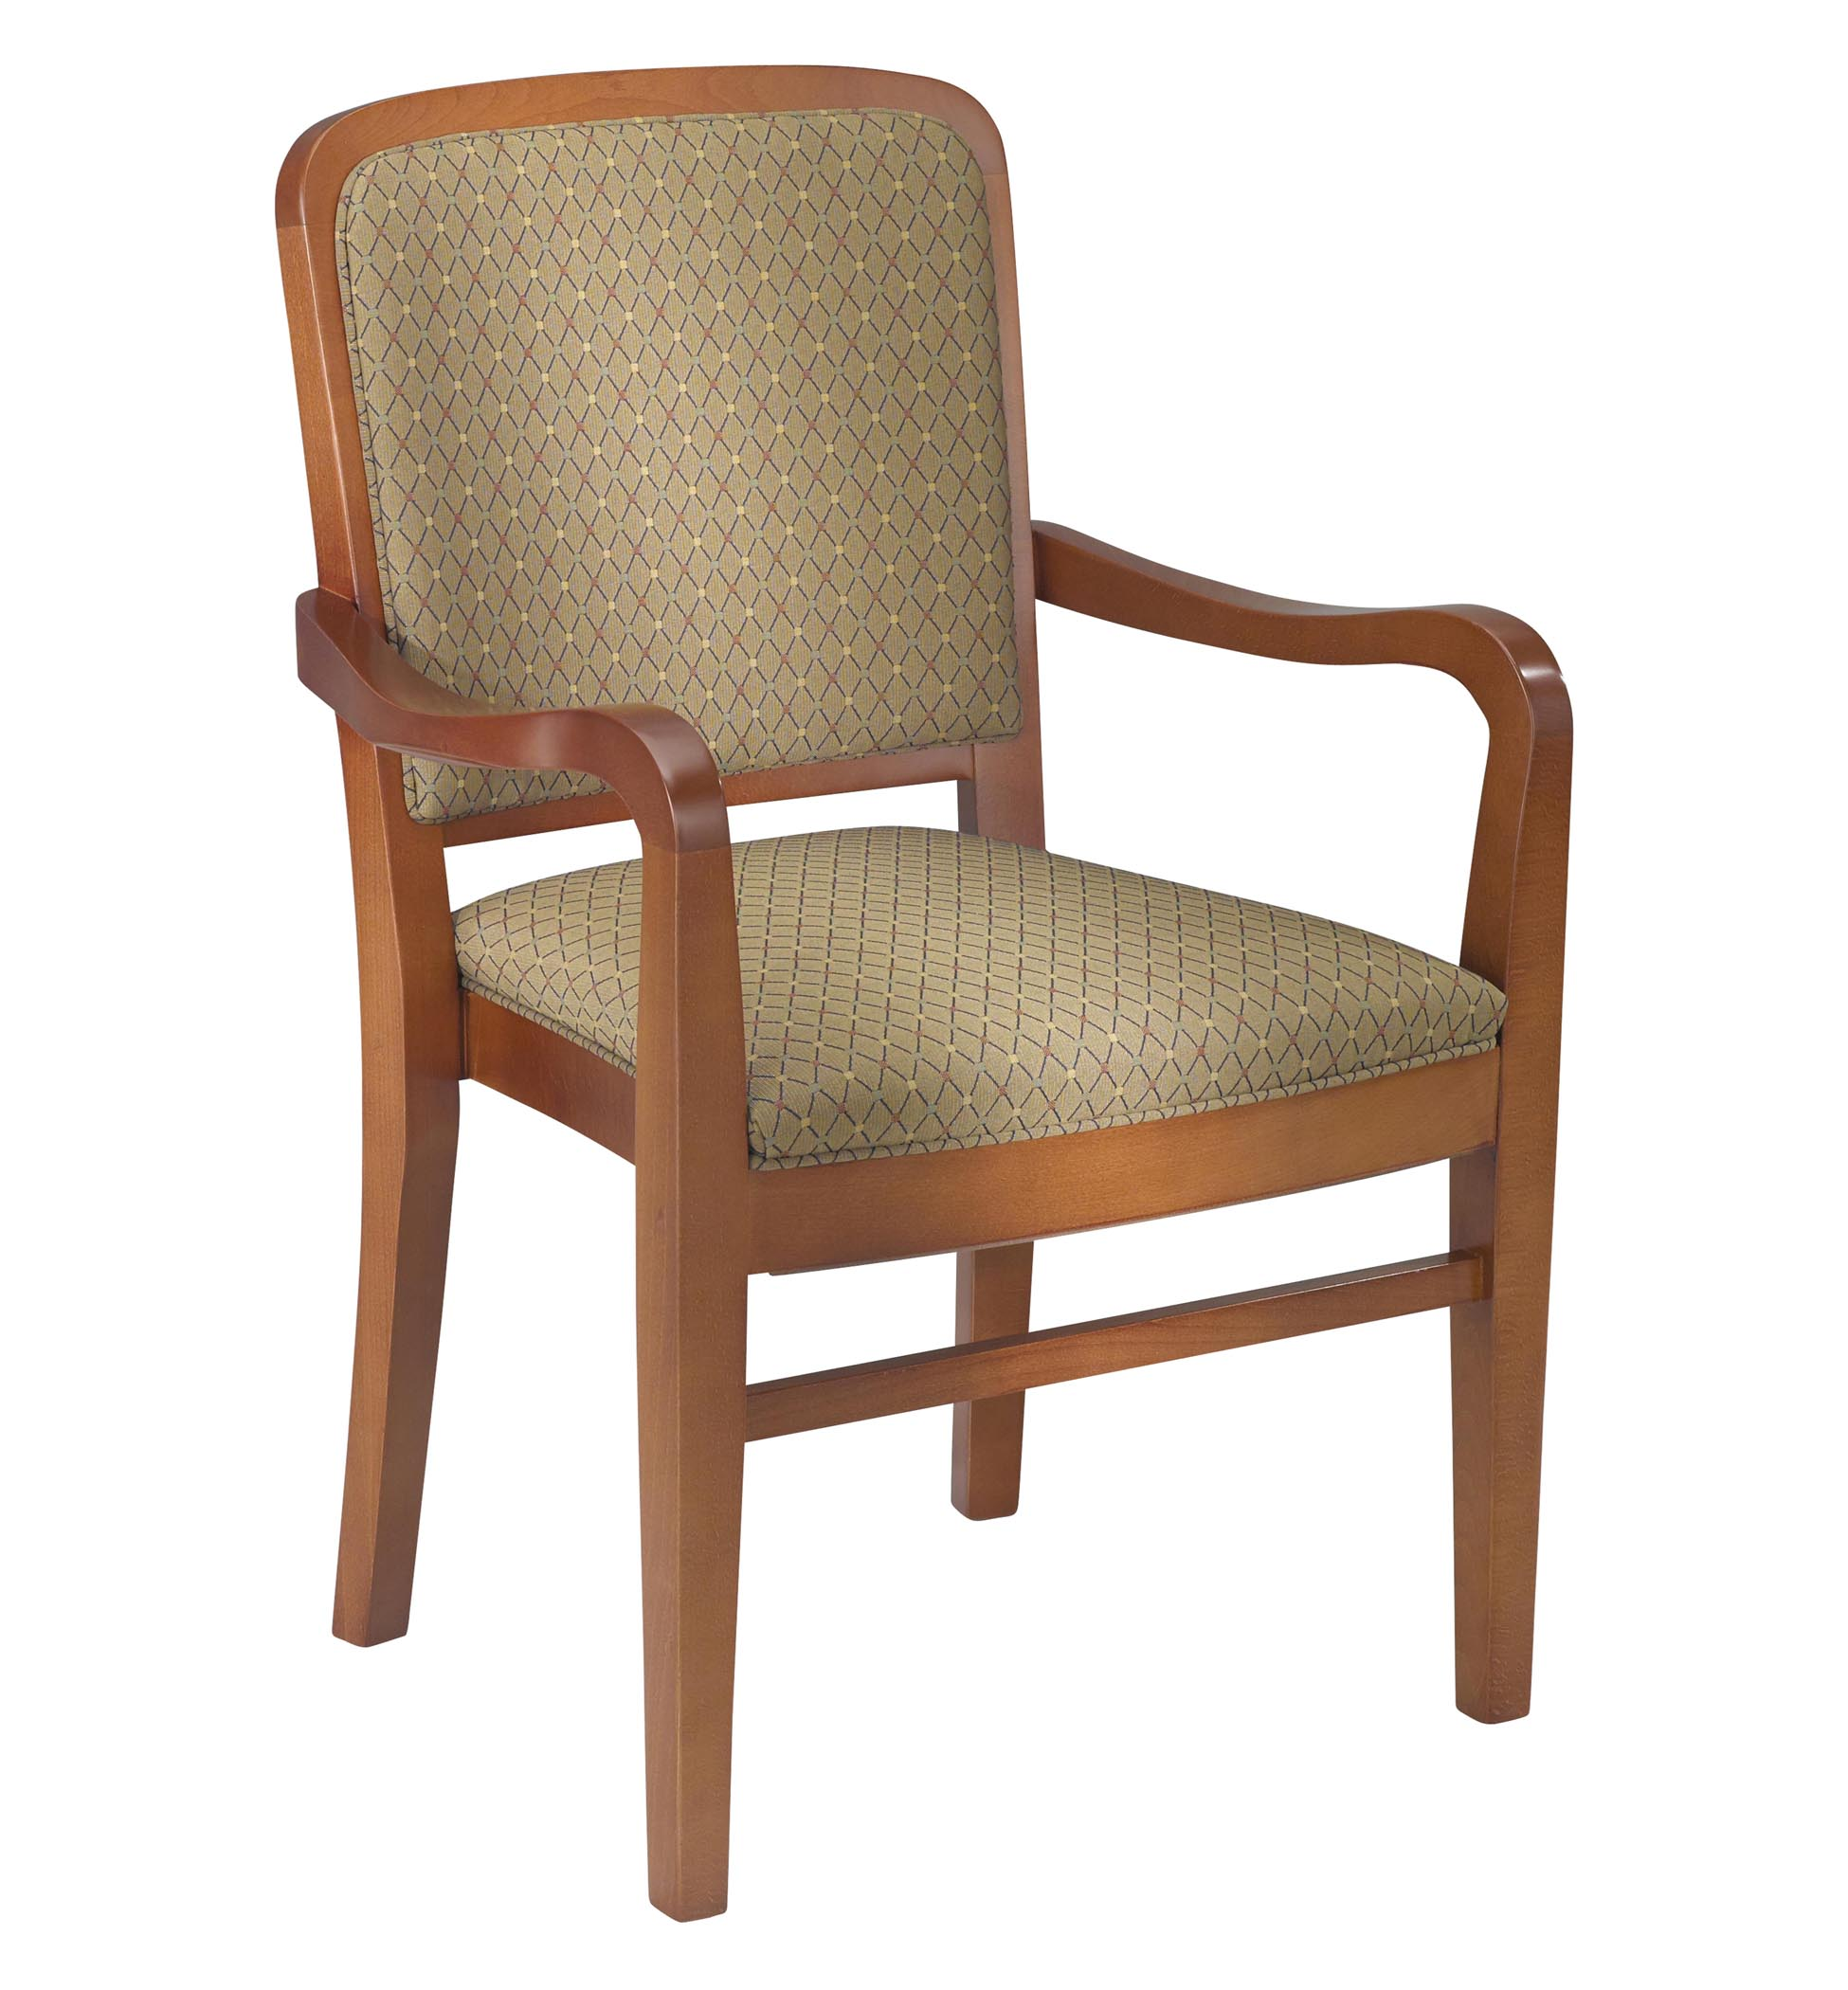 Wooden Chairs With Arms ~ Stacking wood arm chair